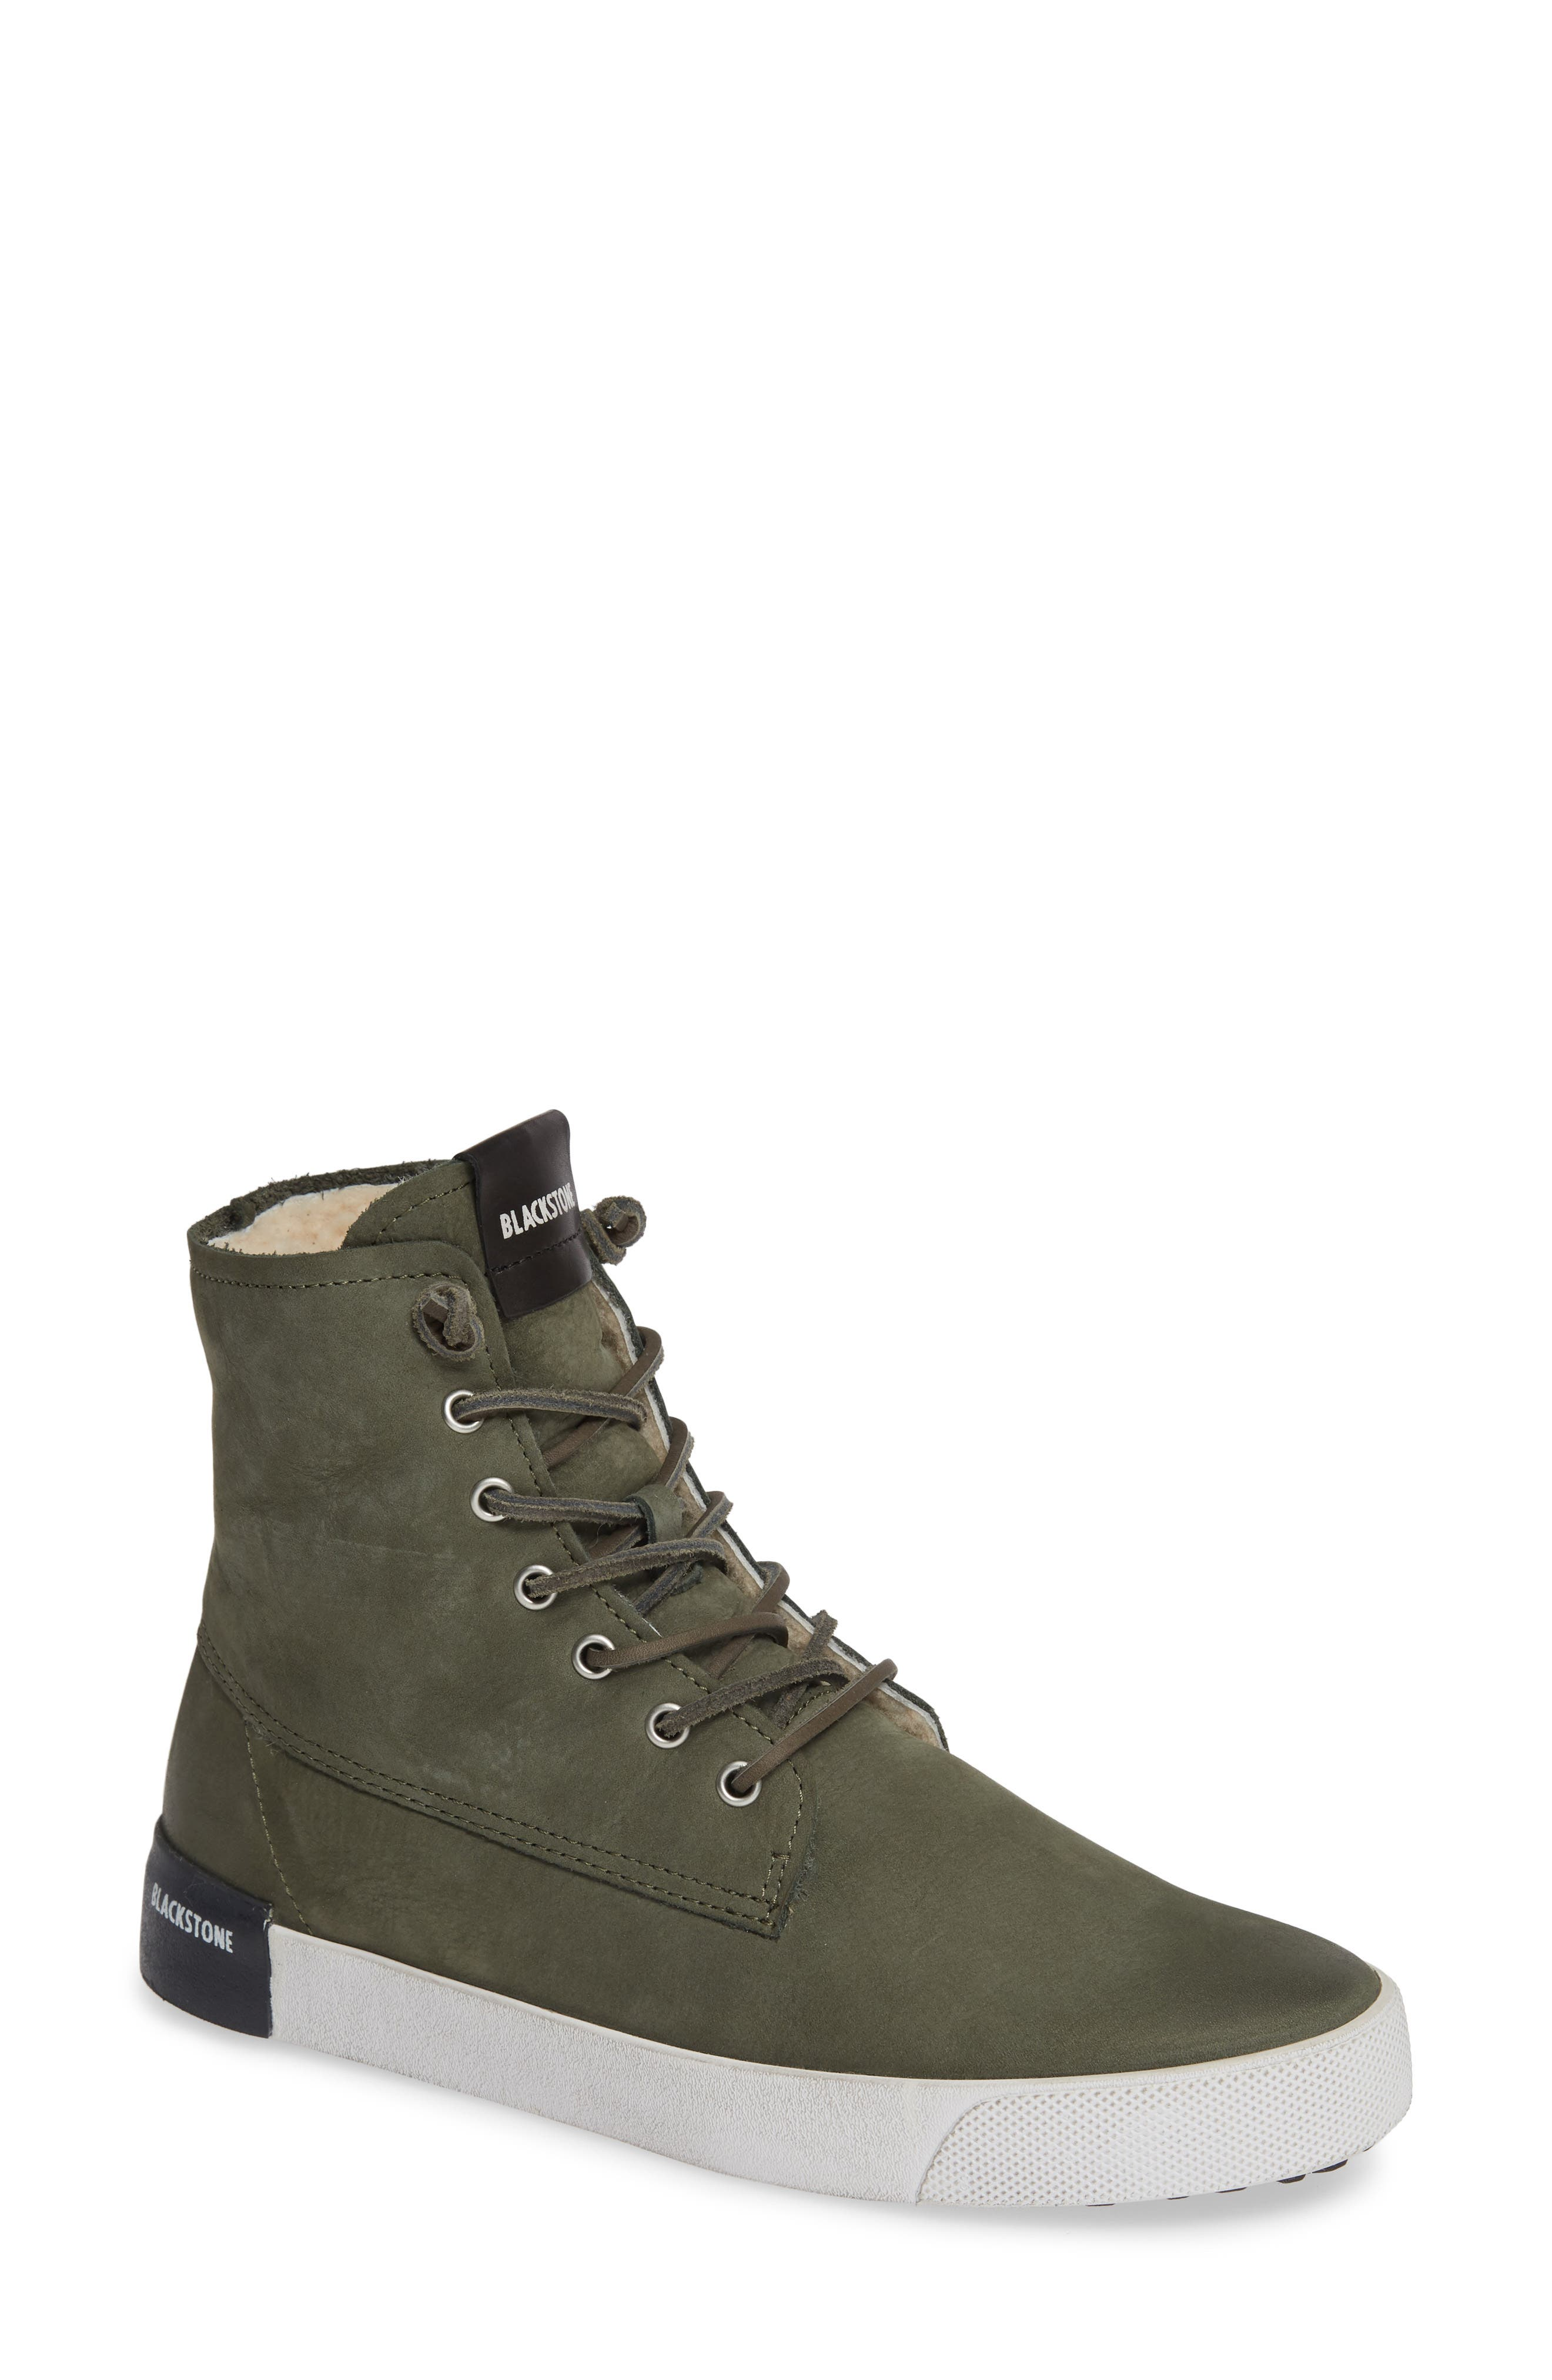 Ql41 High Top Sneaker With Genuine Shearling Lining